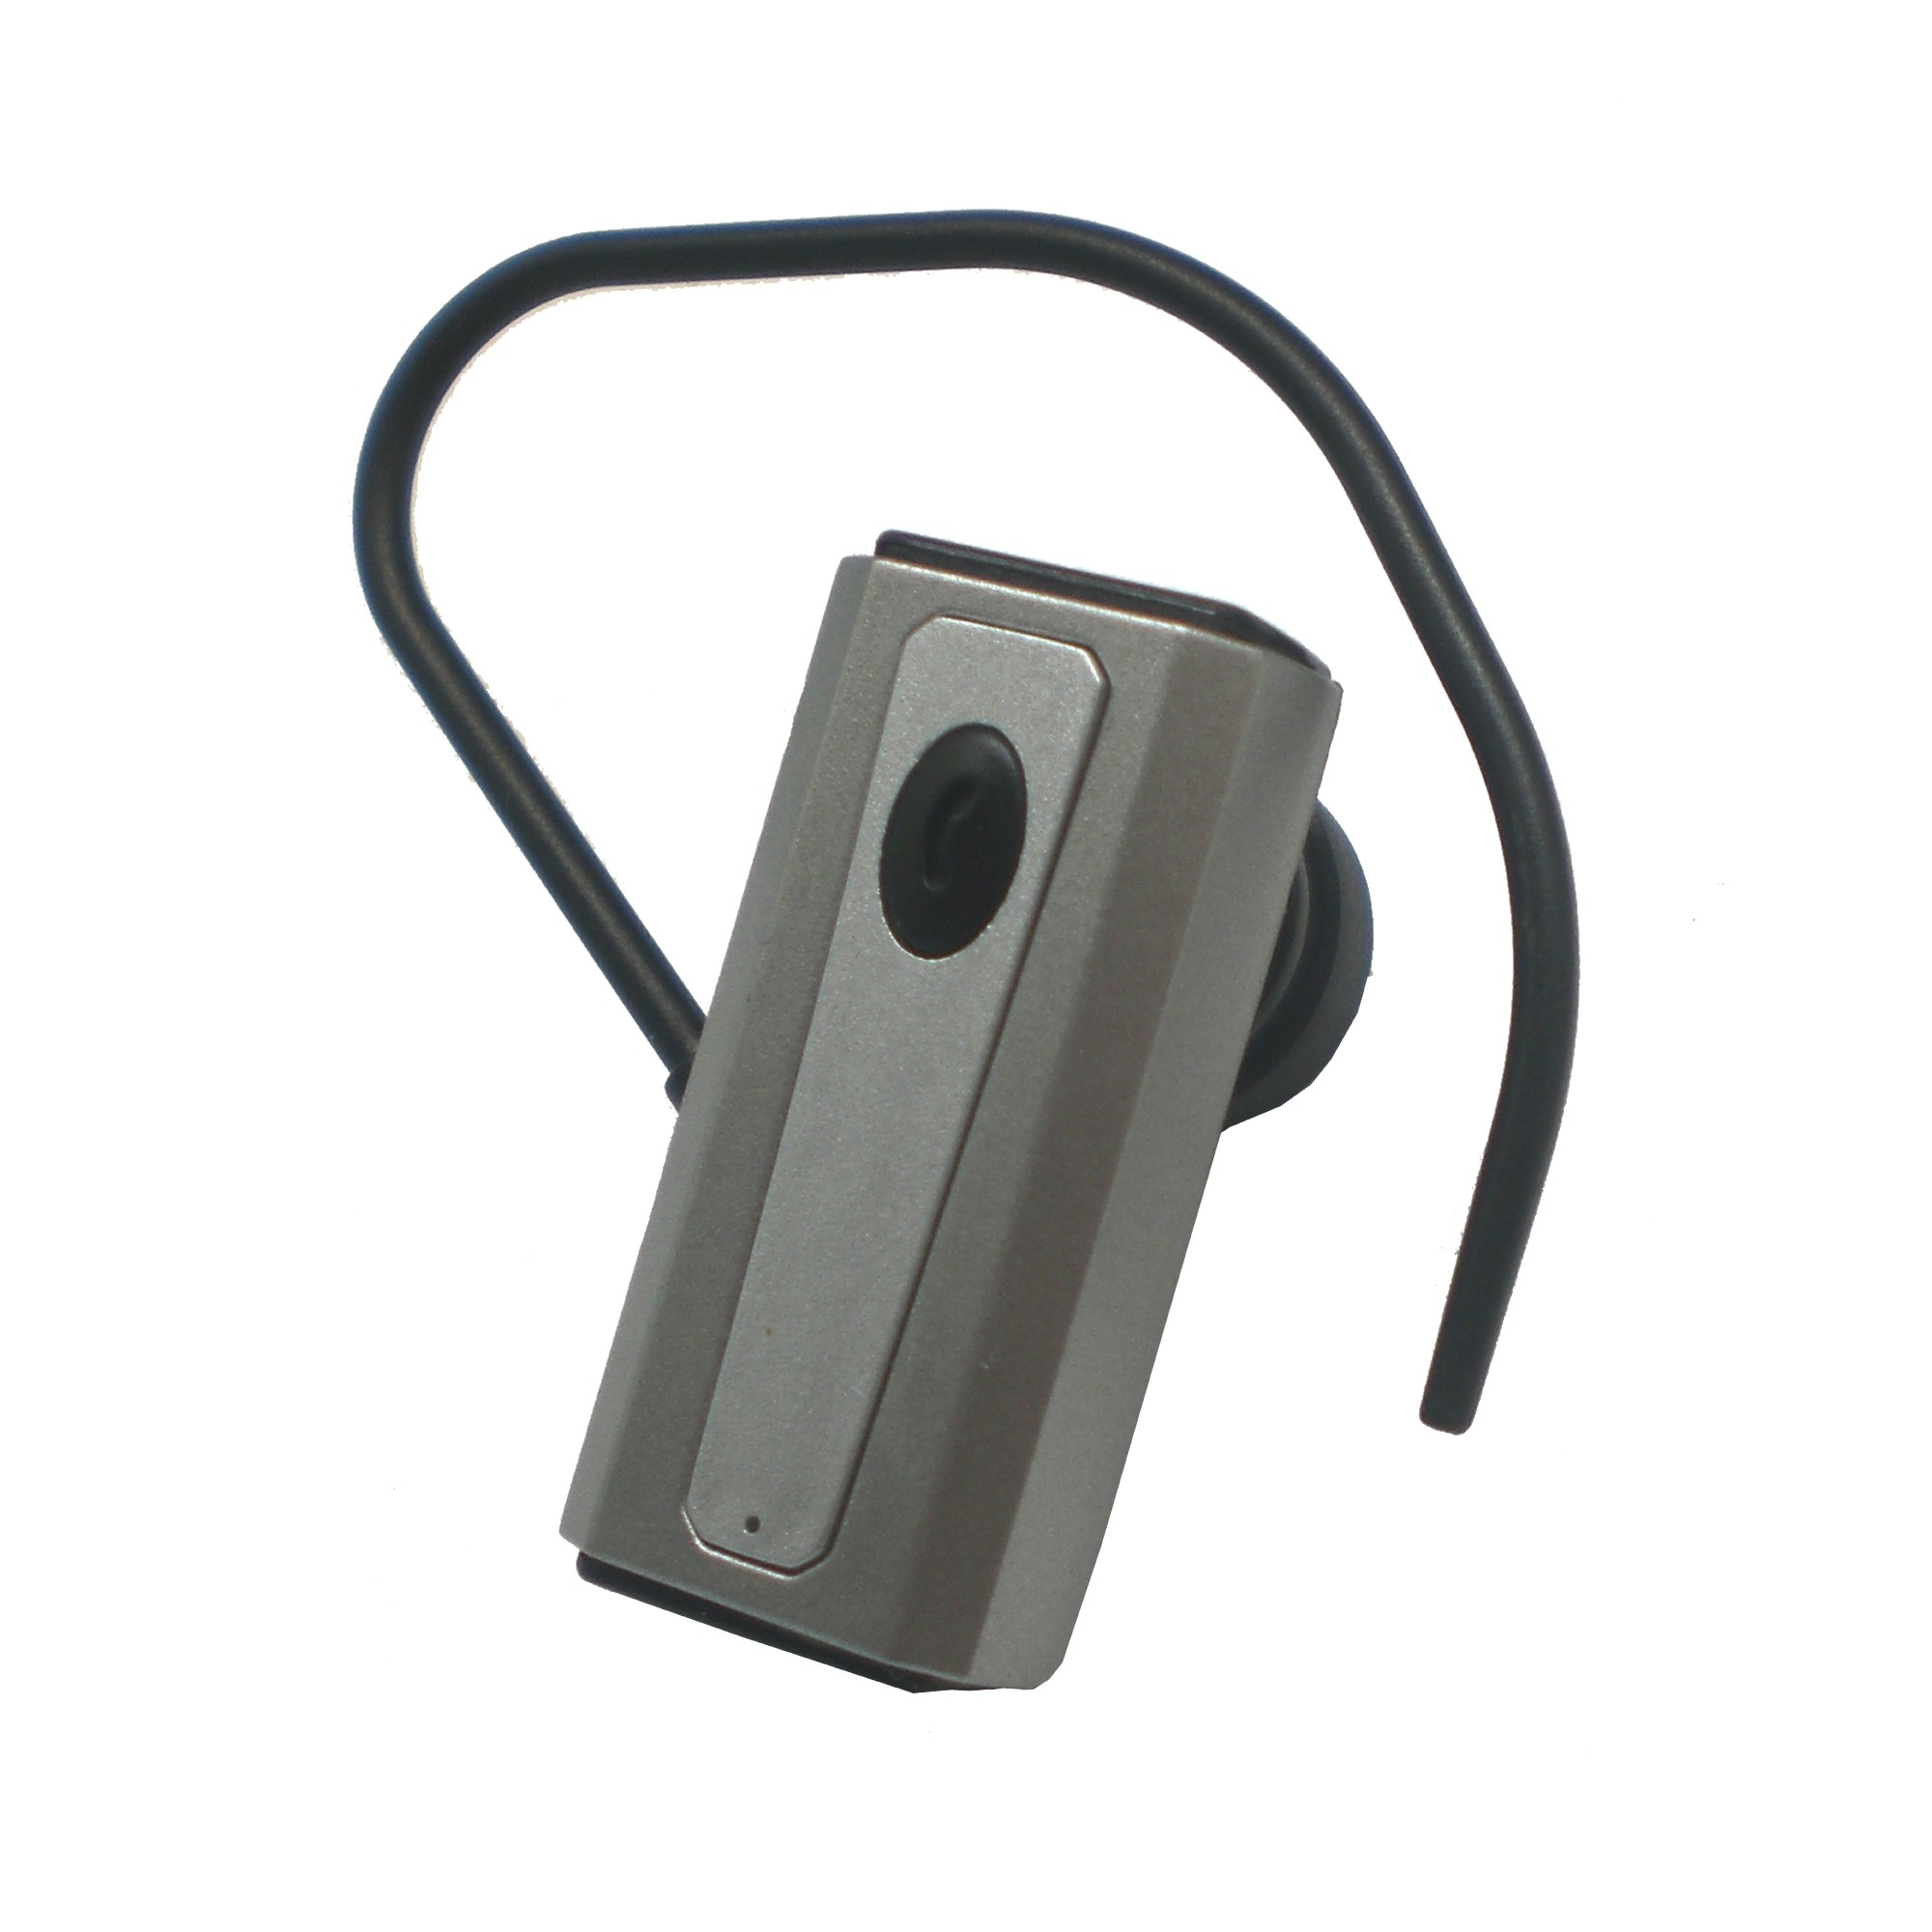 2GO Bluetooth Headset H02 – Bild 1